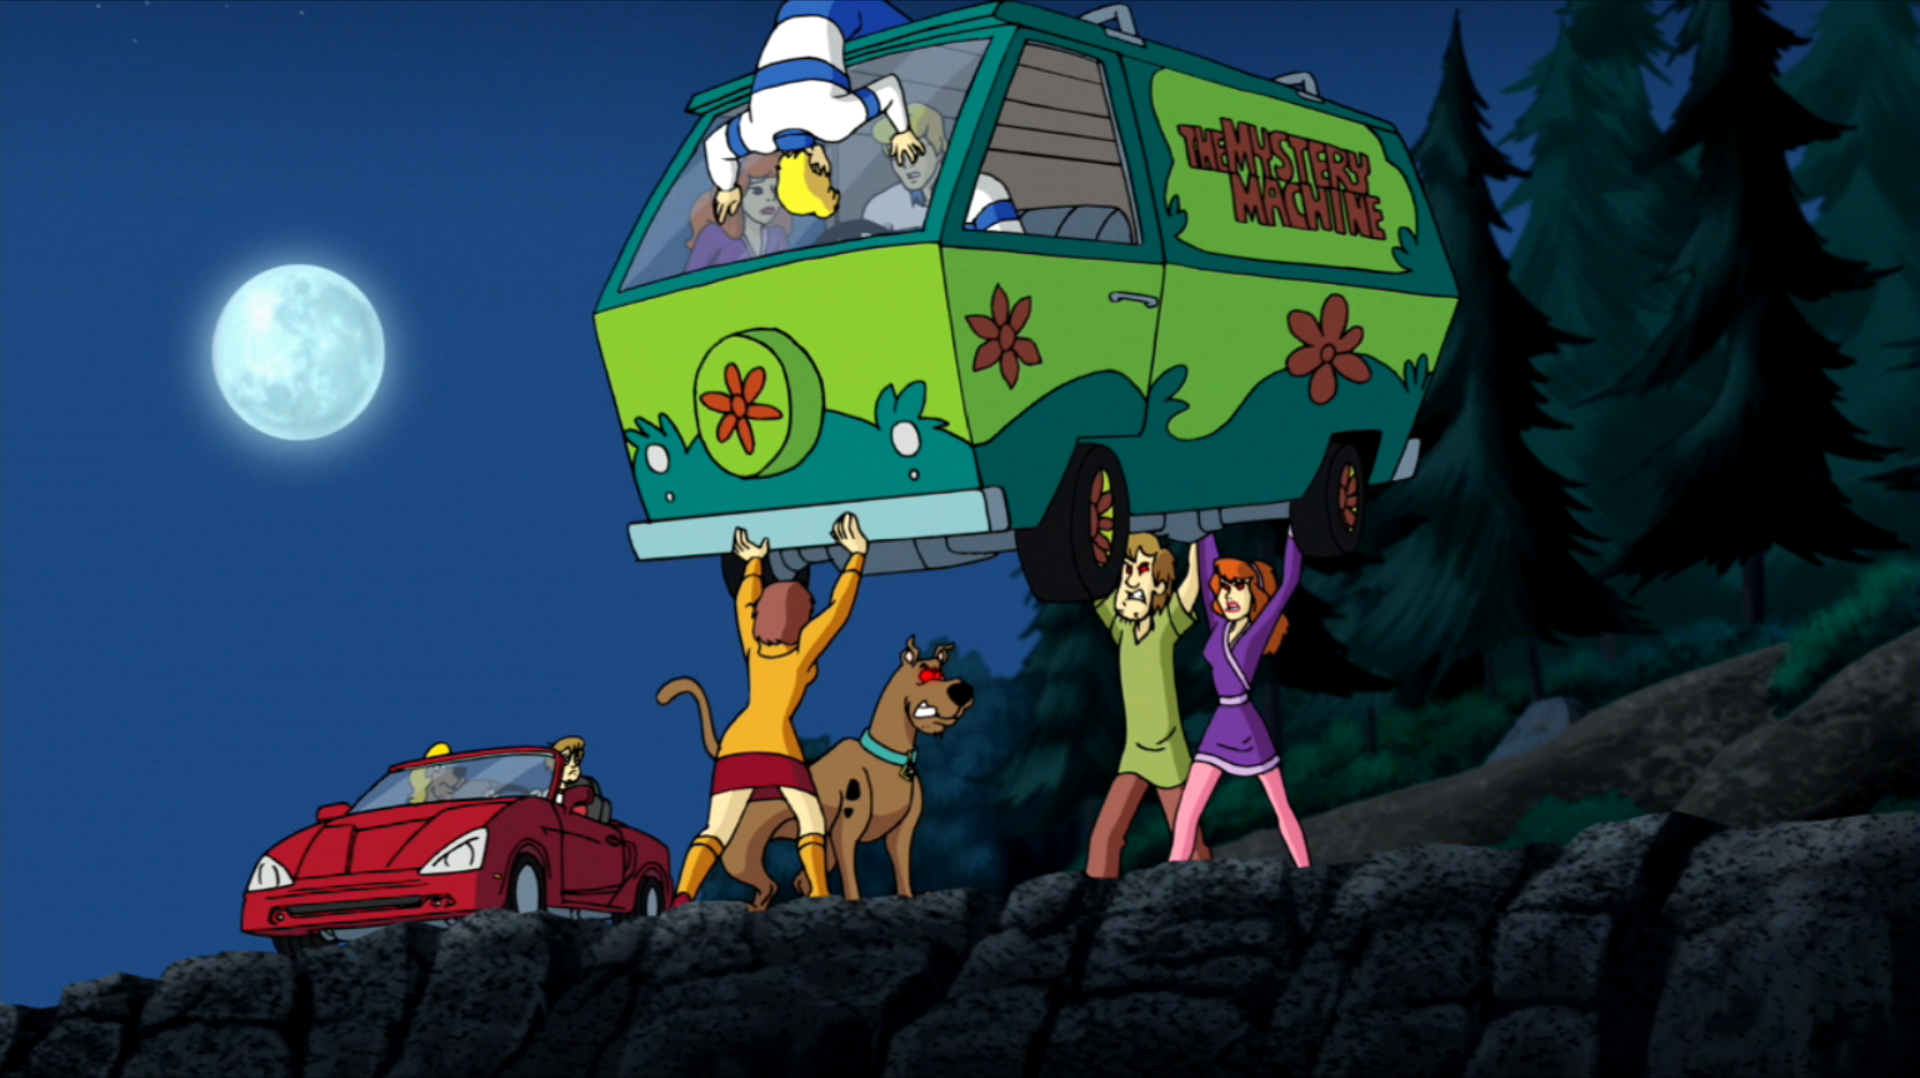 Scoobydoo Adventures Episode 1 Game - Play online at